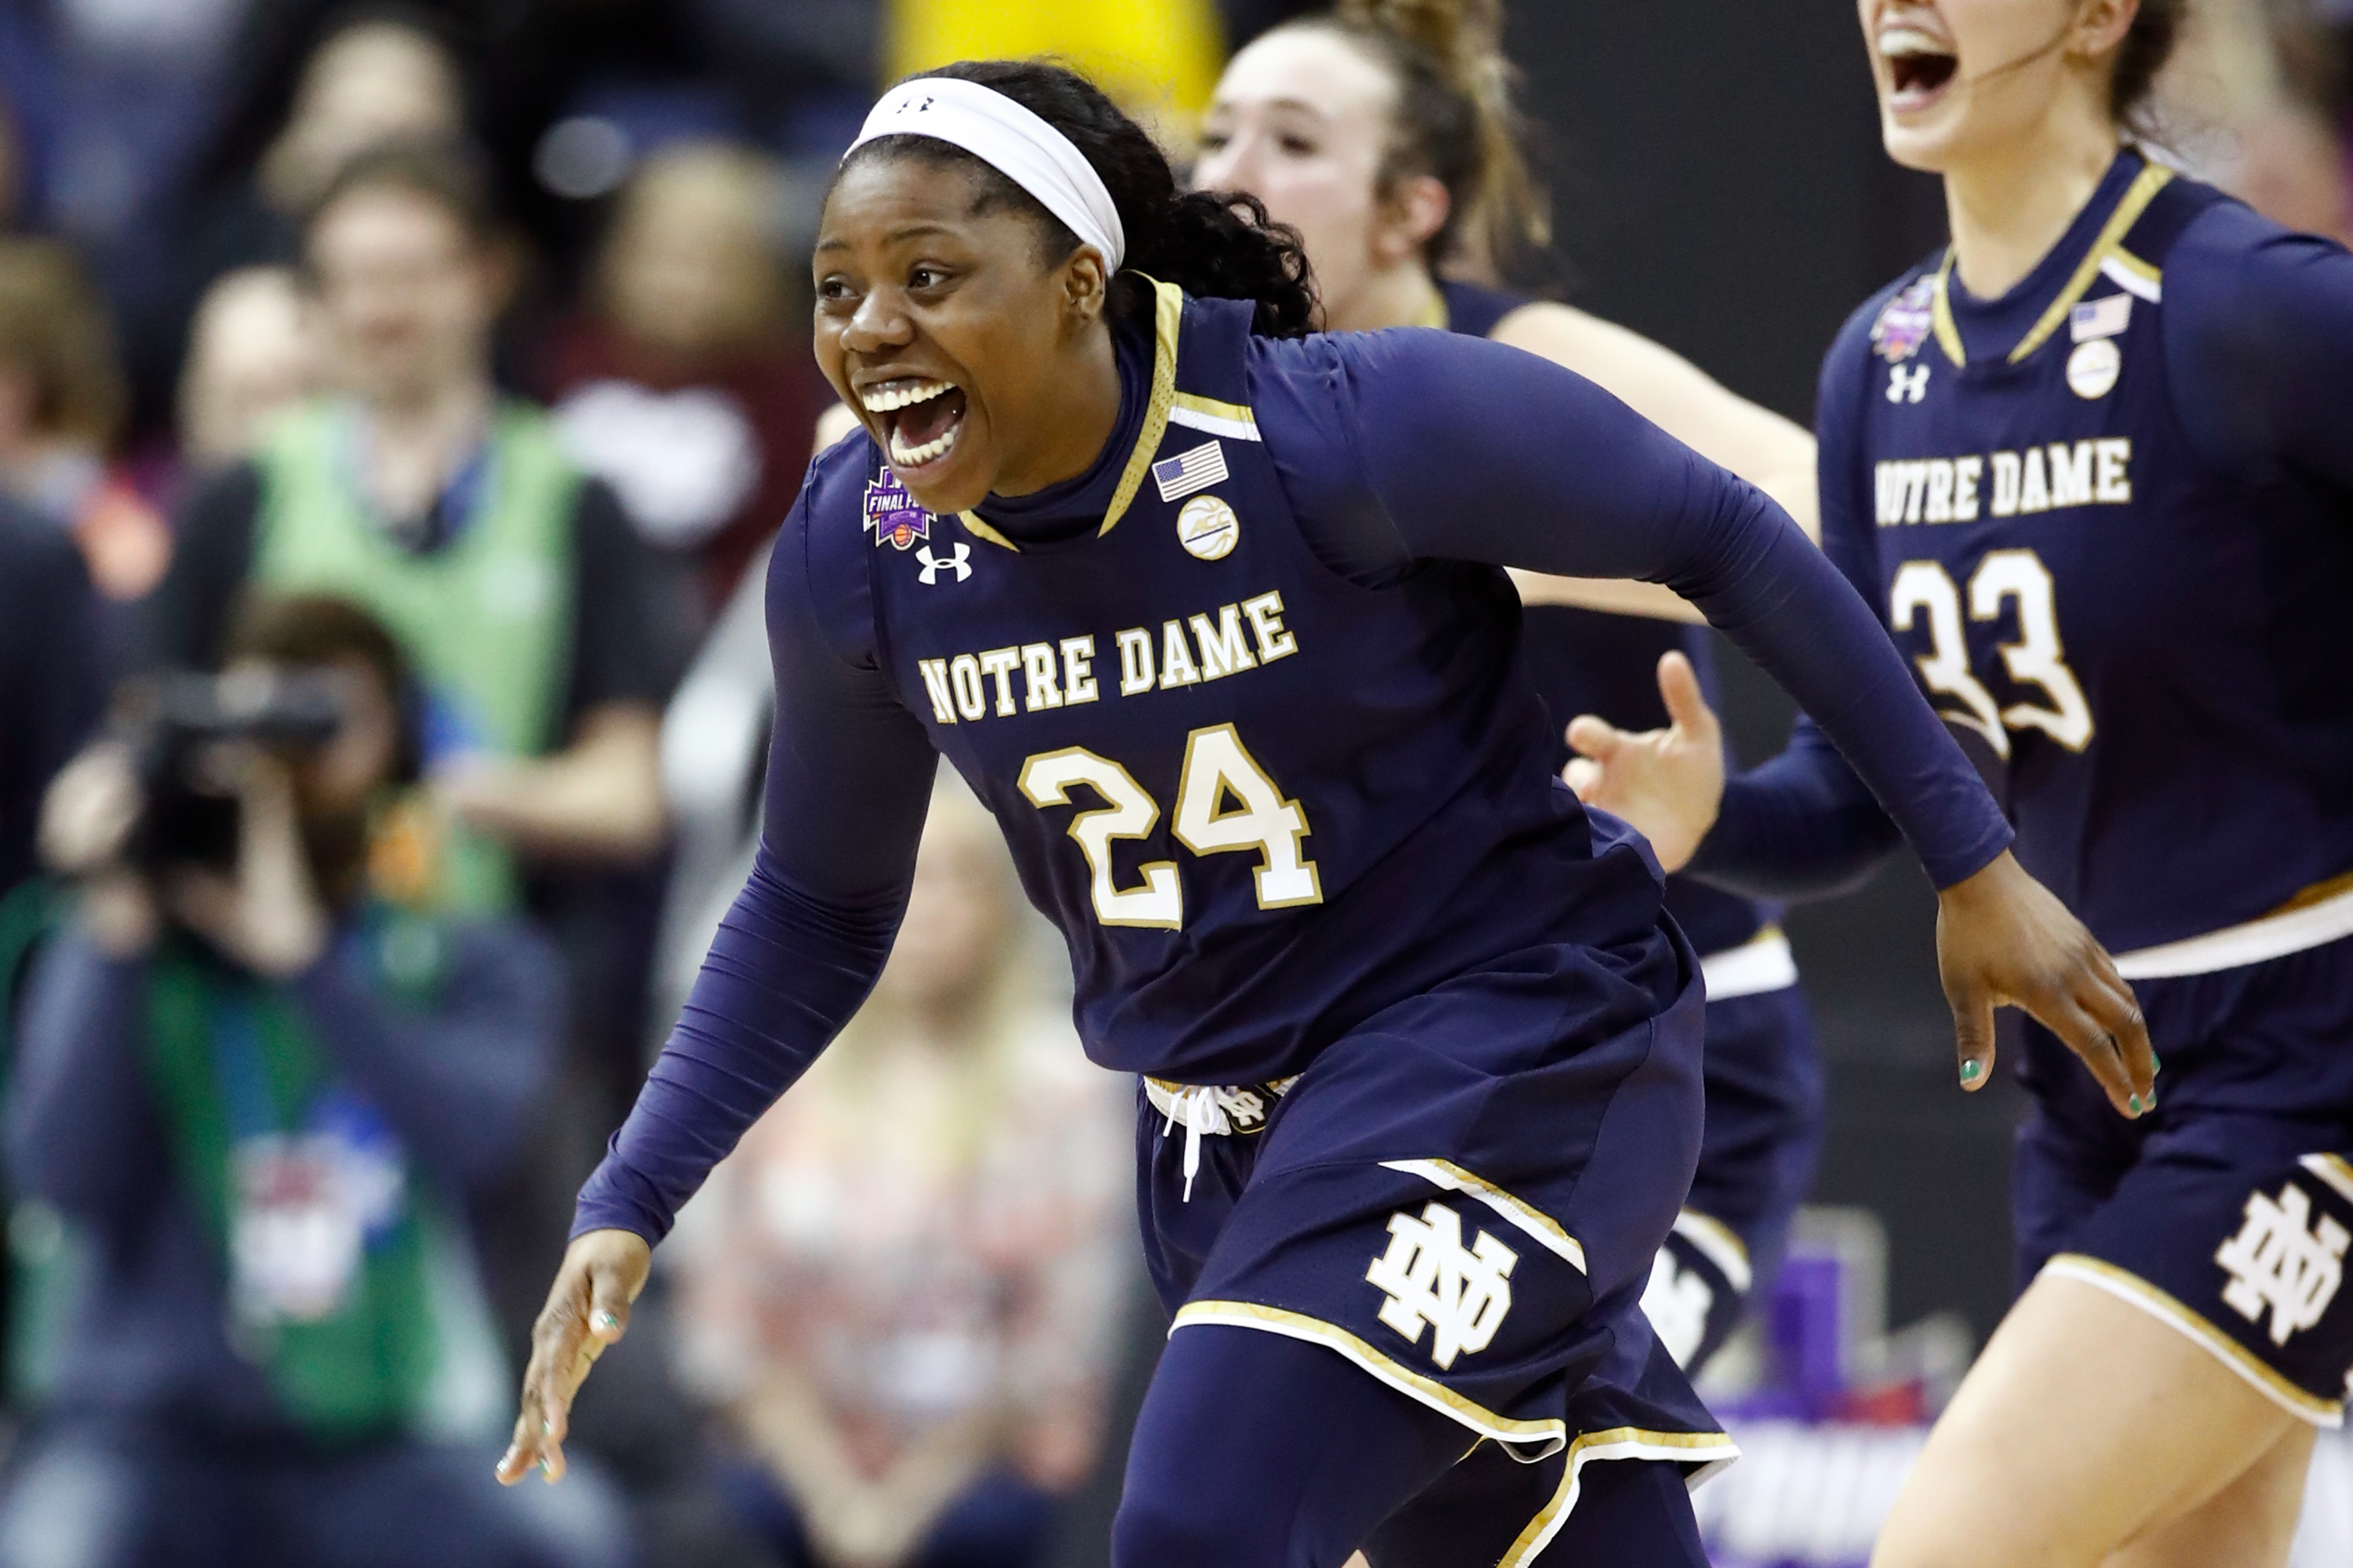 Arike Ogunbowale of the Notre Dame Fighting Irish celebrates after scoring the game winning basket with 0.1 seconds remaining in the fourth quarter to defeat the Mississippi State Lady Bulldogs in the championship game of the 2018 NCAA Women's Final Four at Nationwide Arena on April 1, 2018 in Columbus, Ohio. T